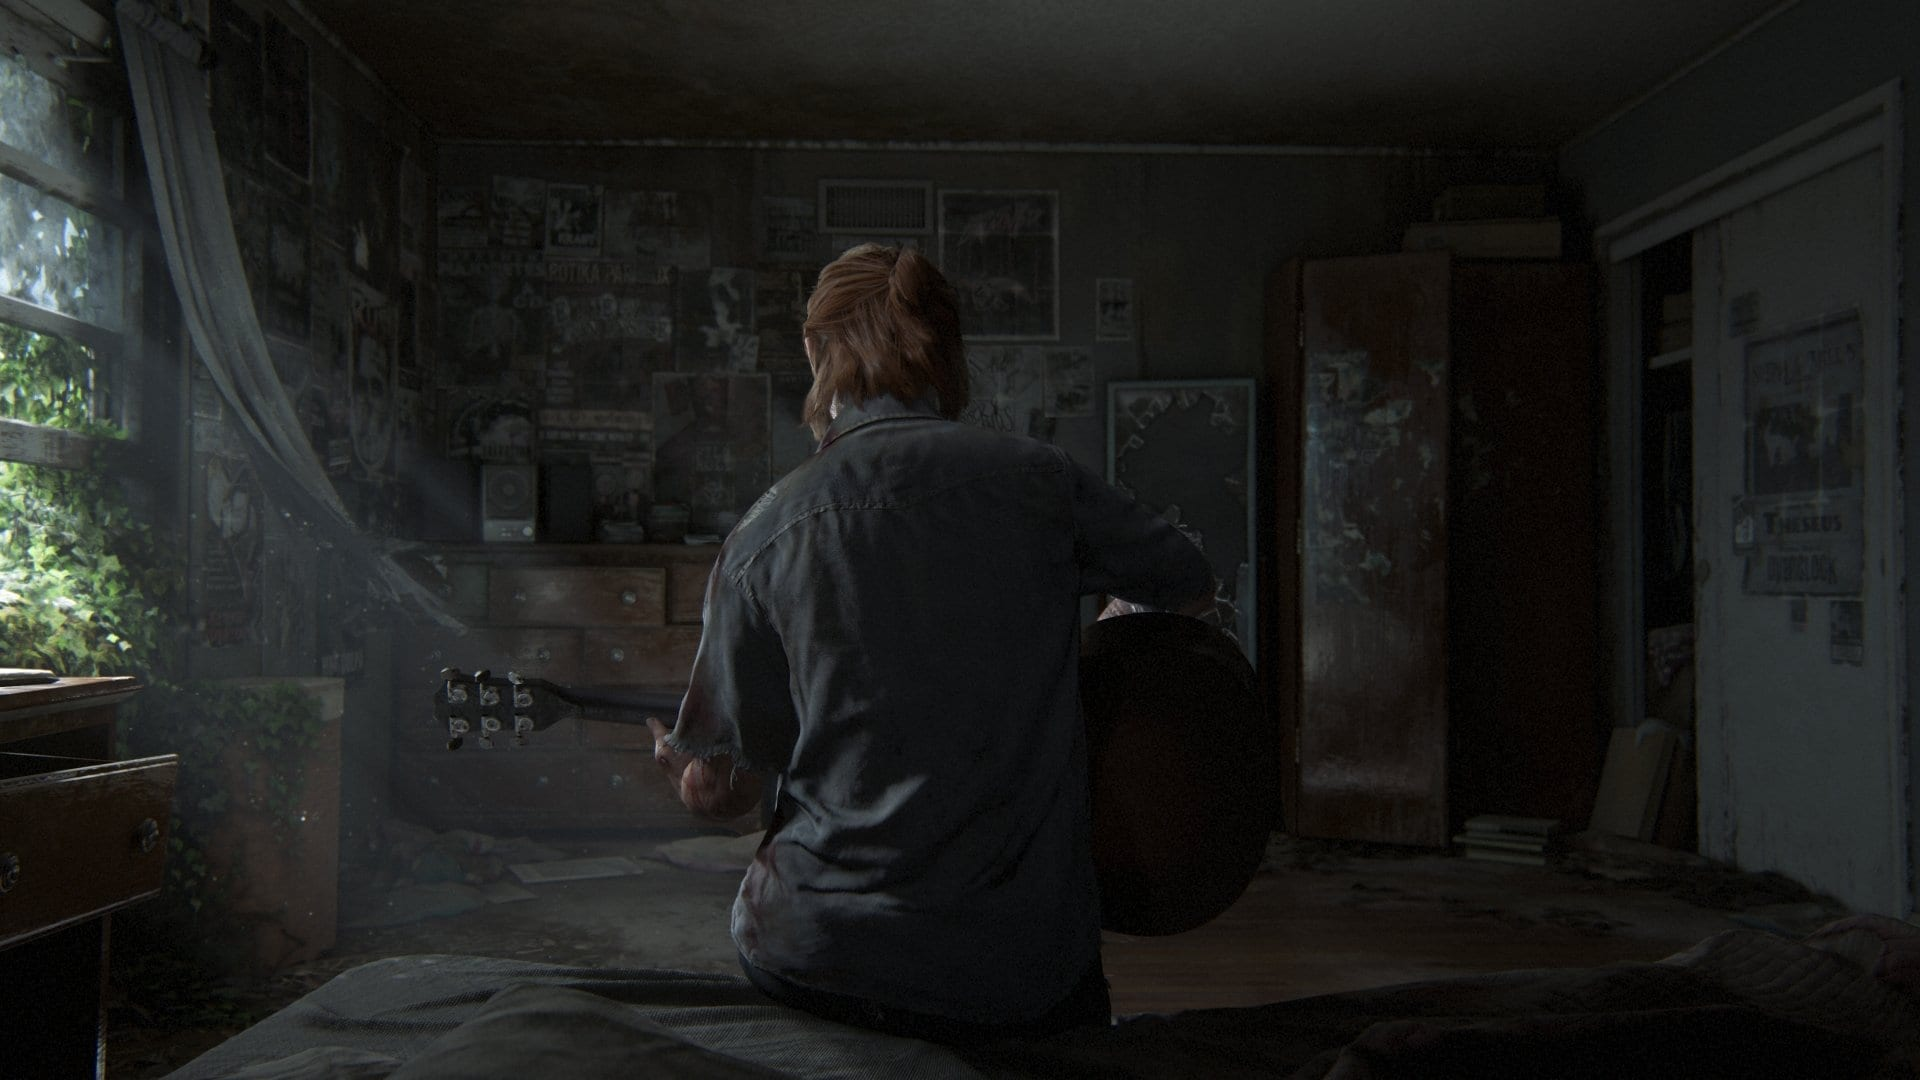 'The Last of Us Part II' Evaluate: Tense & Unsettling But Flawed